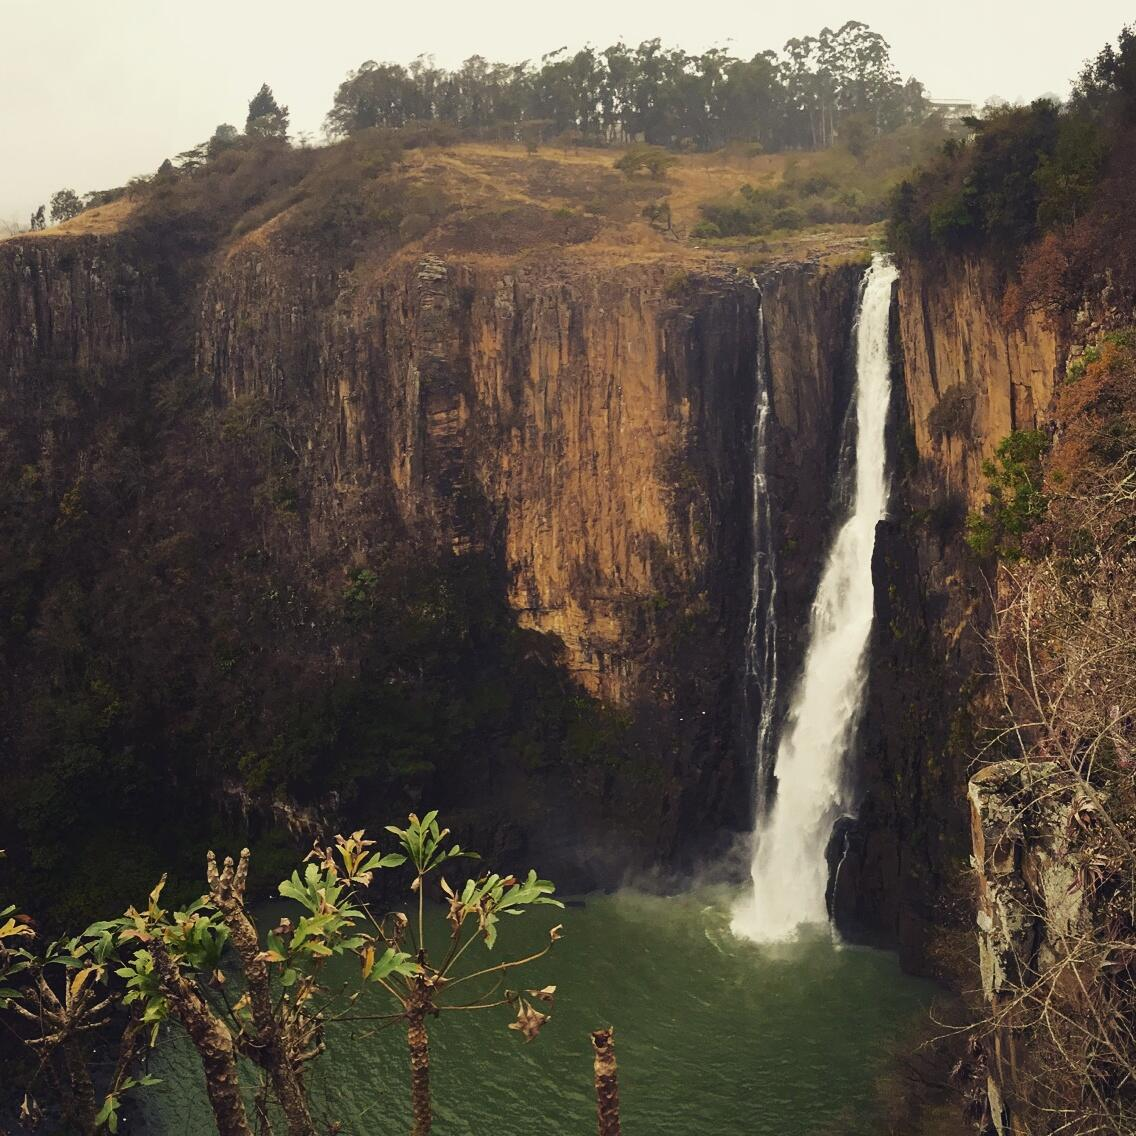 Howick Falls is a good spot to look for roosting Peregrine Falcons. Noah Strycker